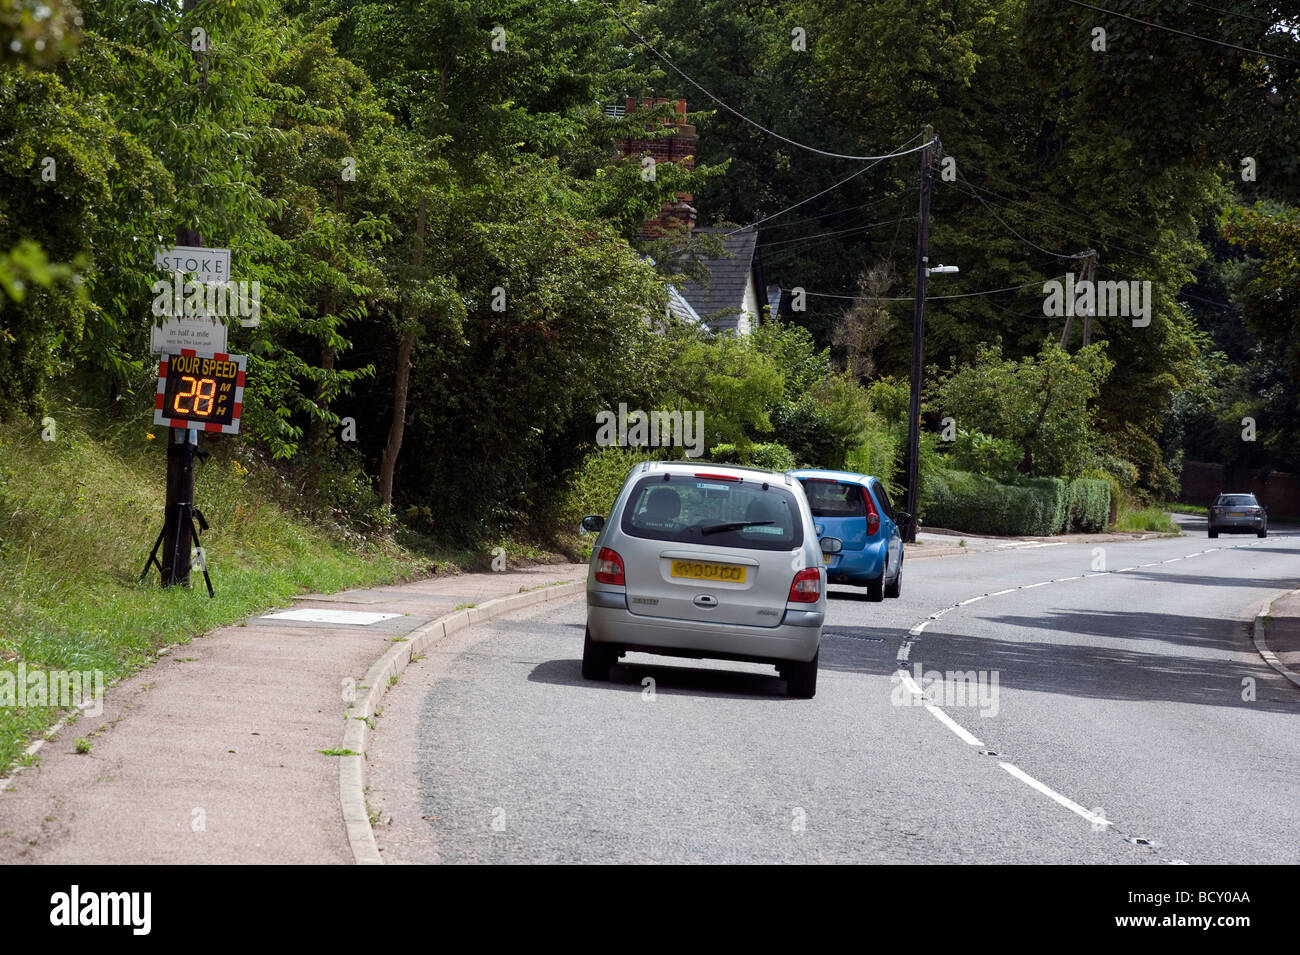 Smiley SID speed indicator device being used to help slow down trafic through the Suffolk village of Stoke by Clare - Stock Image